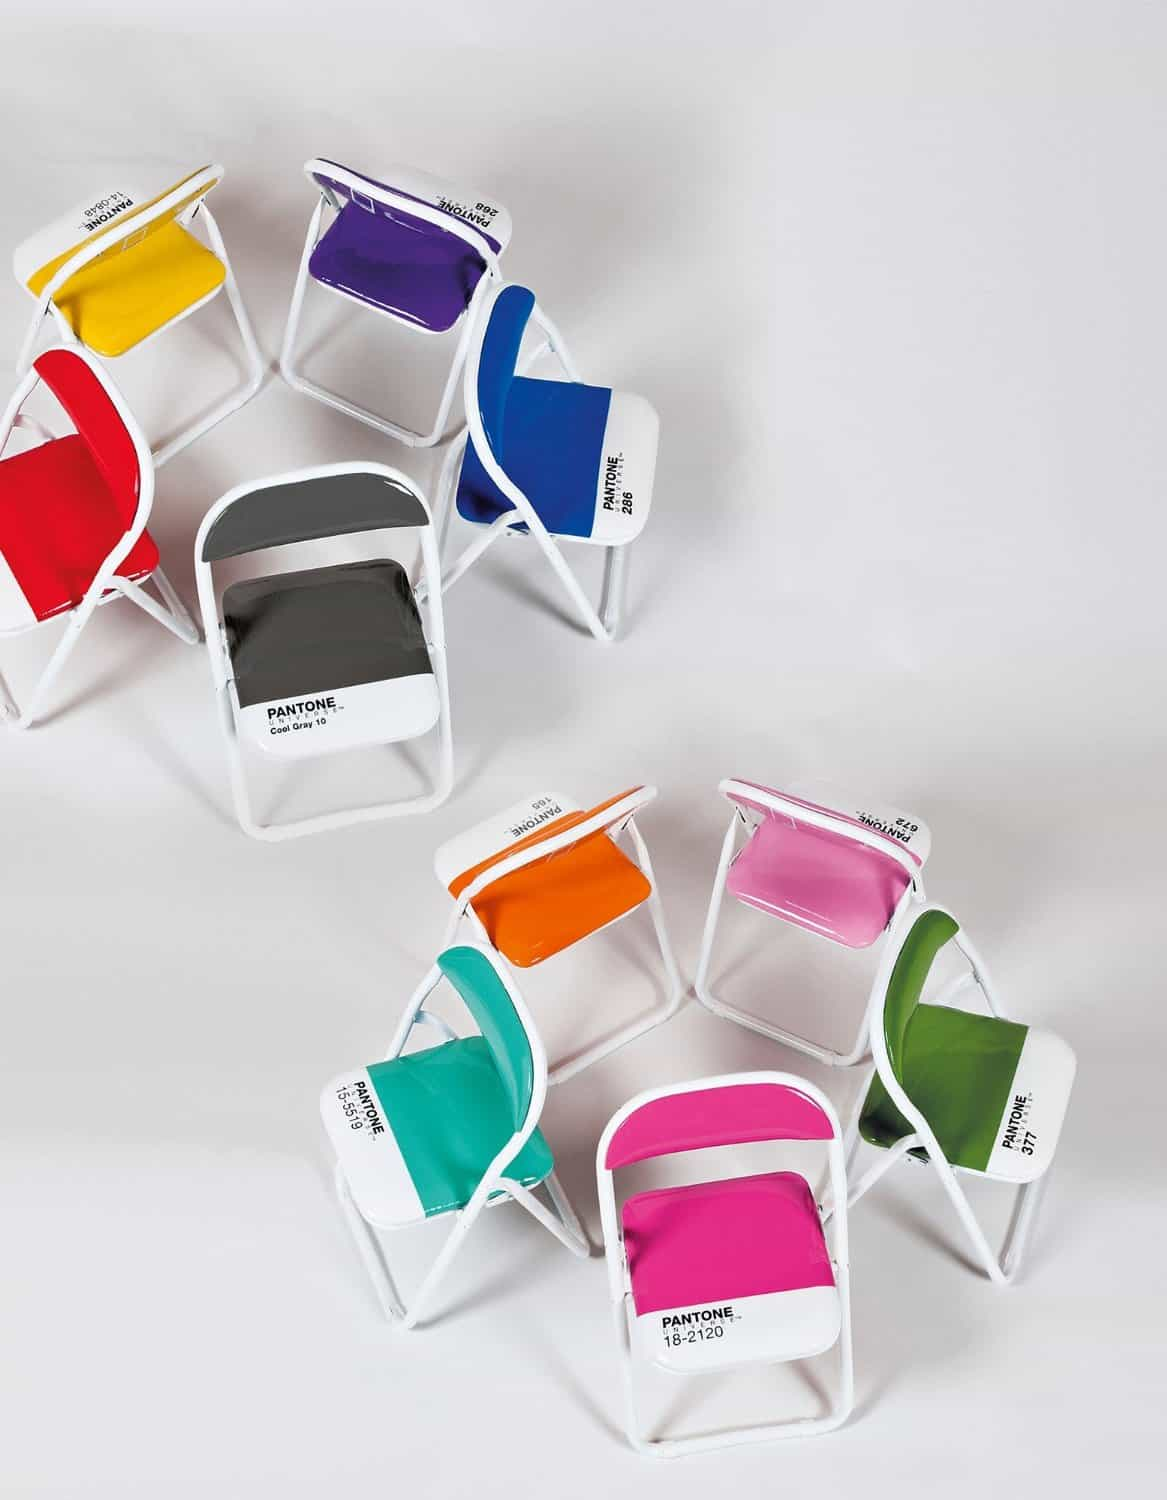 What is the color of your folding chair Seletti Pantone Chair   NoveltyStreet. Pantone Folding Chairs For Sale. Home Design Ideas